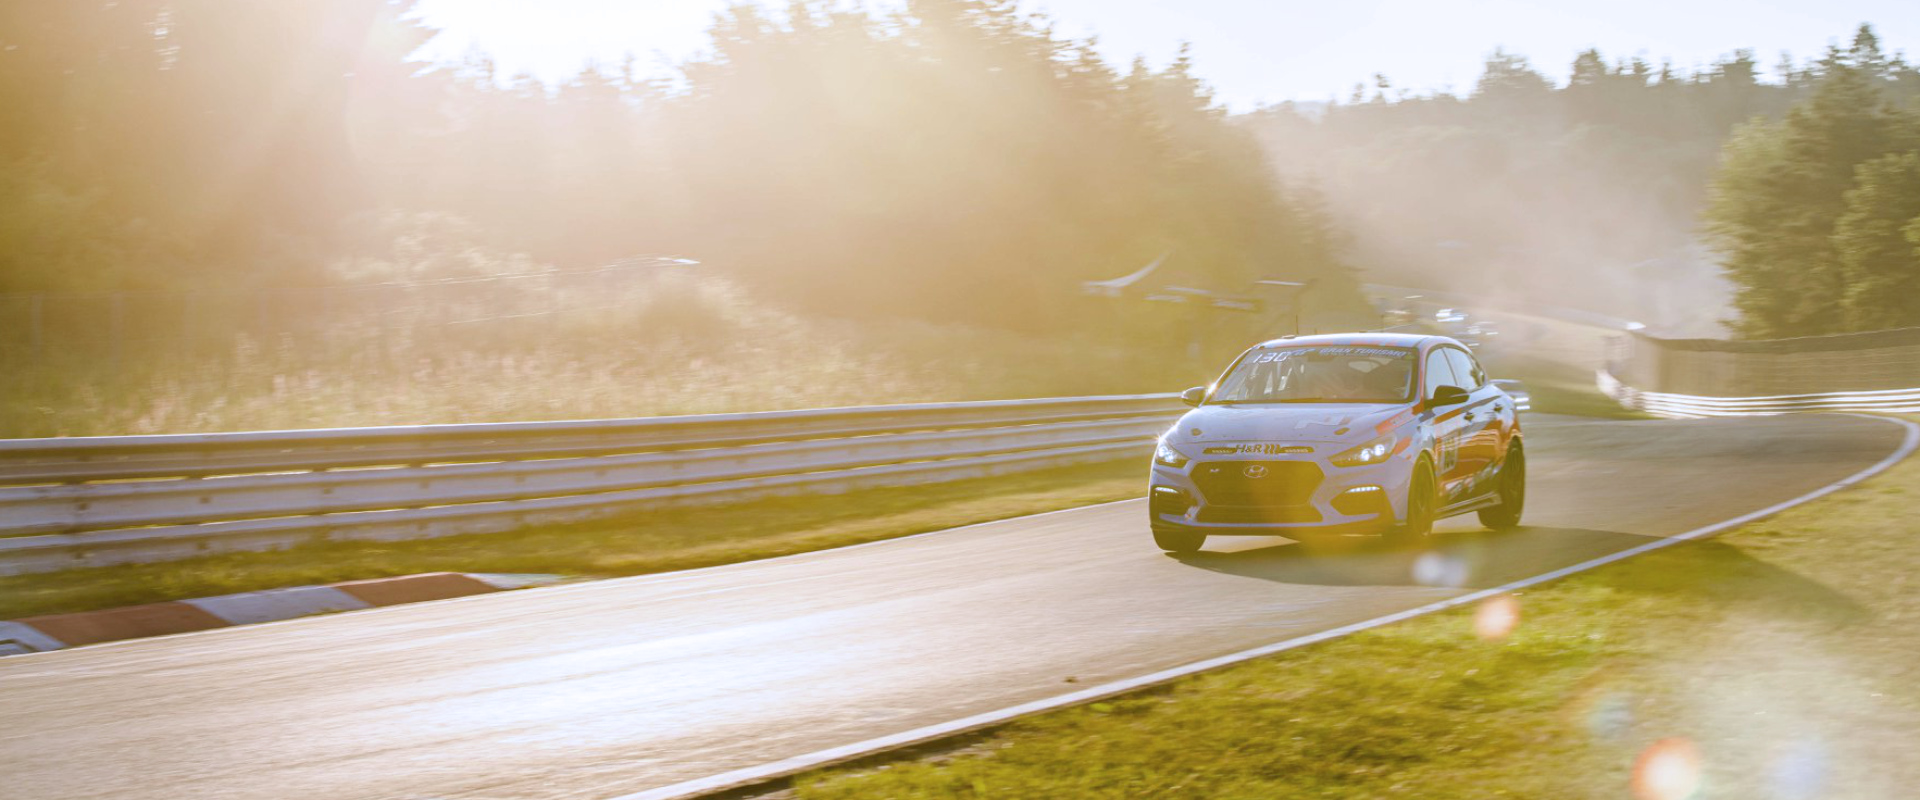 TAROX equipped i30 N competing in Nurburgring 24h